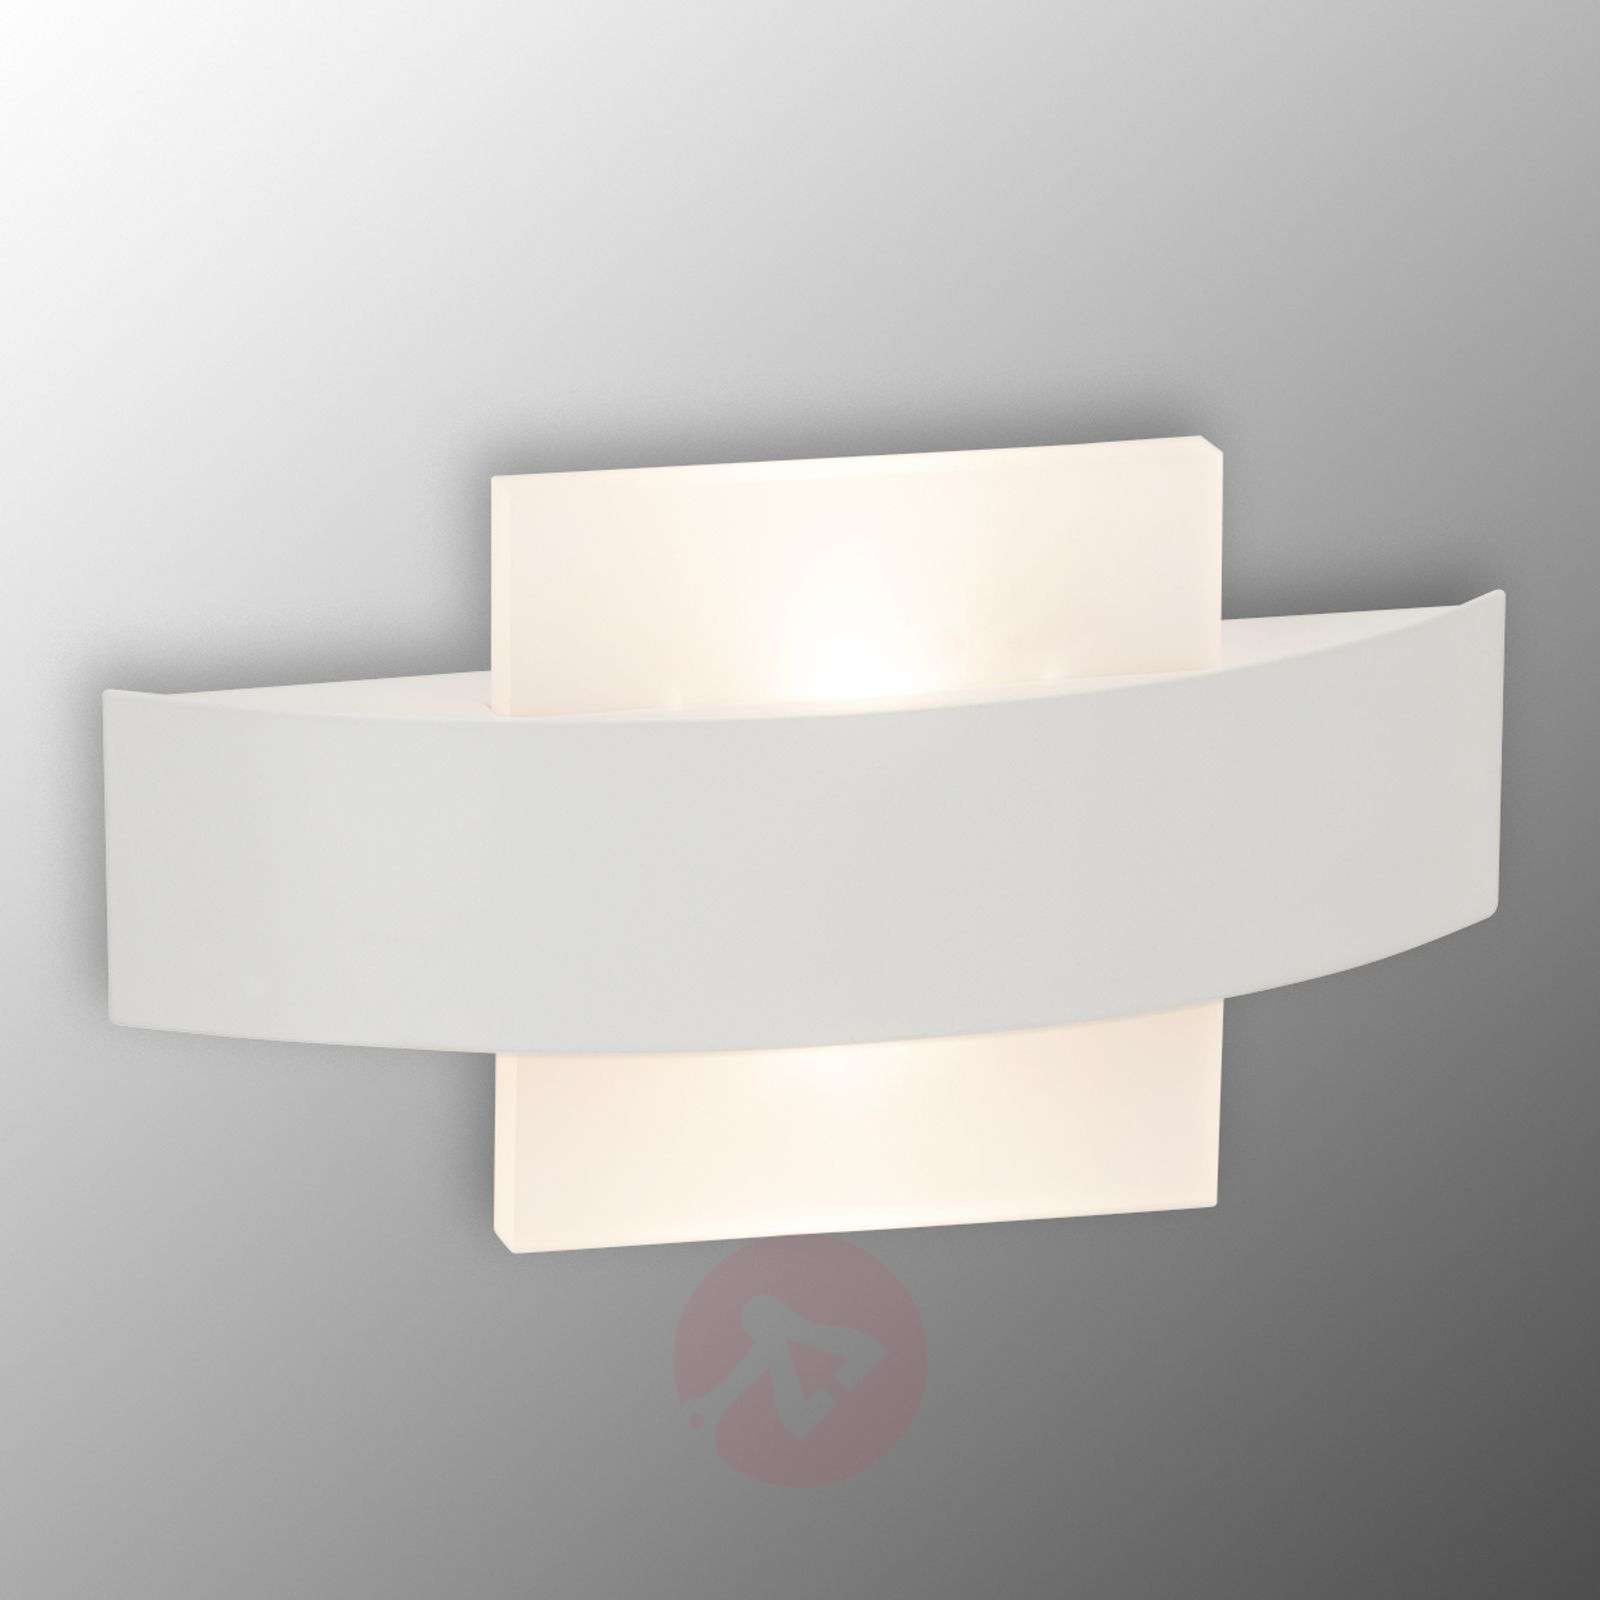 Solution lampada LED da parete quadrata-1509033-01